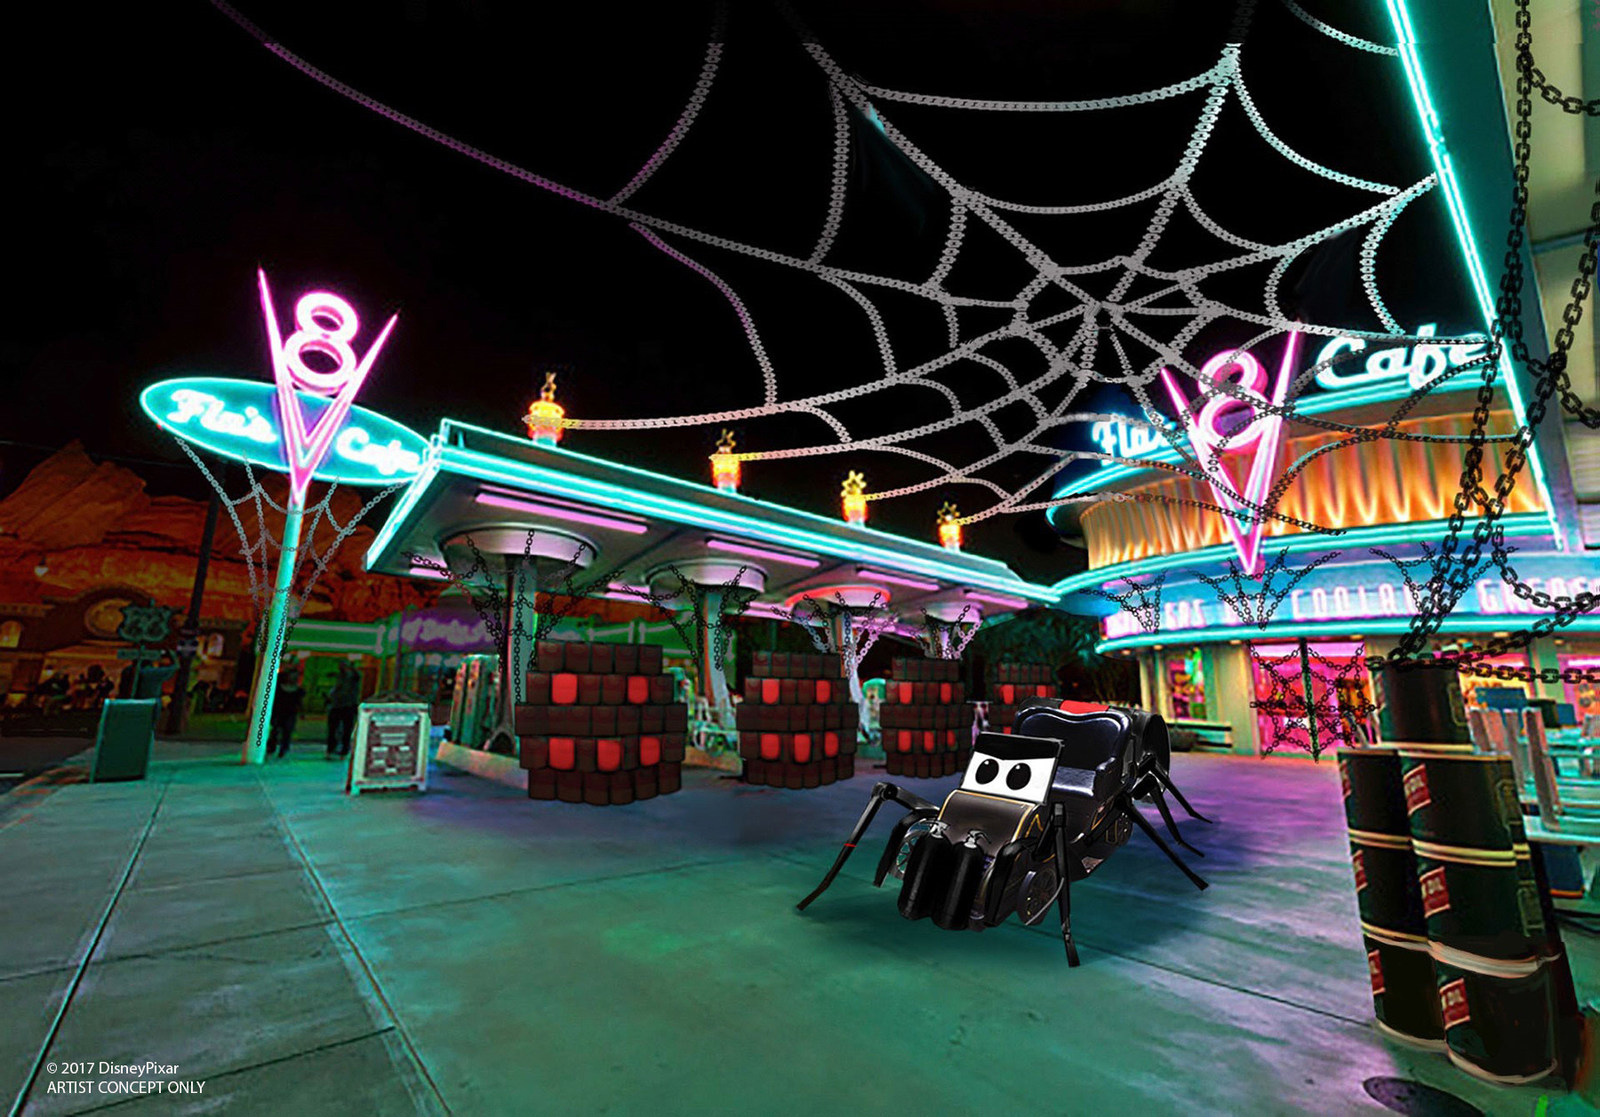 New Halloween Fun, Thrills and Villainous Décor Cast a Spell at Disney California Adventure Park, Sept. 15-Oct. 31